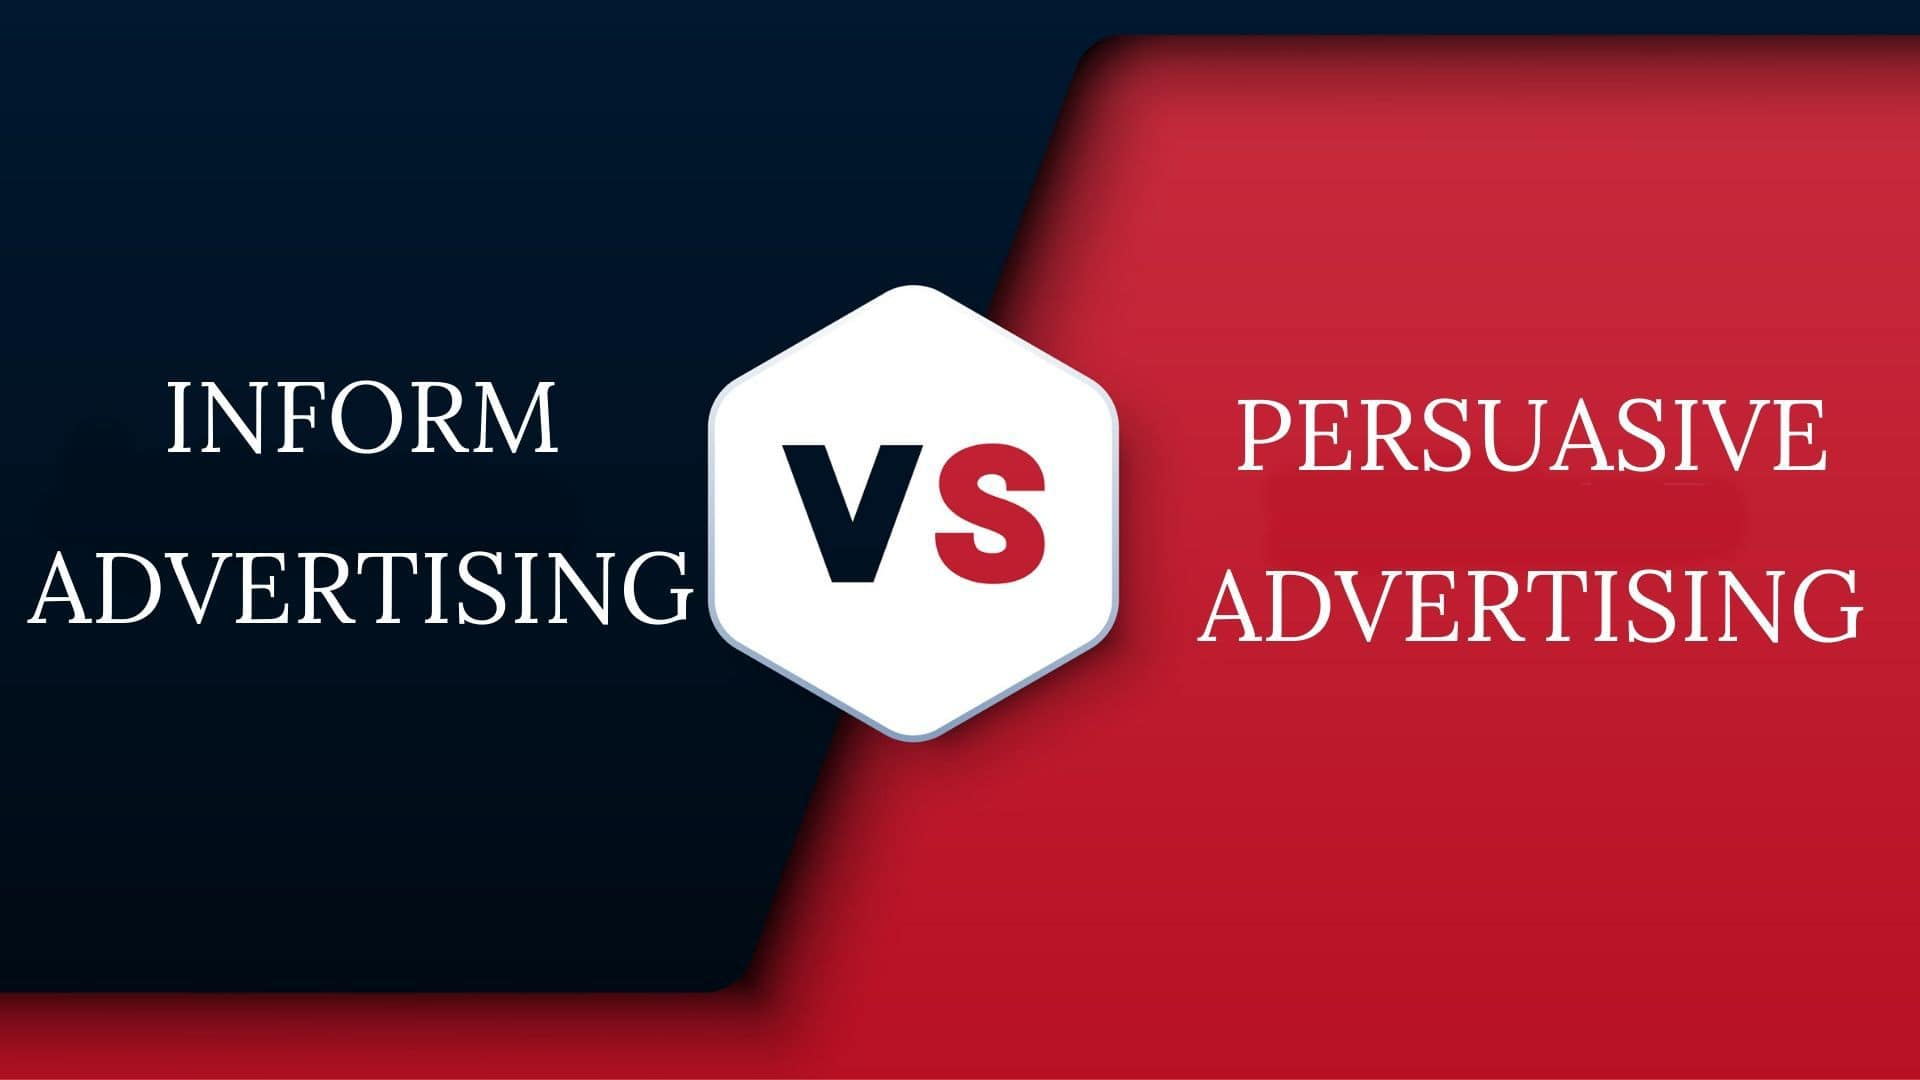 Informative Advertising Vs Persuasive Advertising - 1